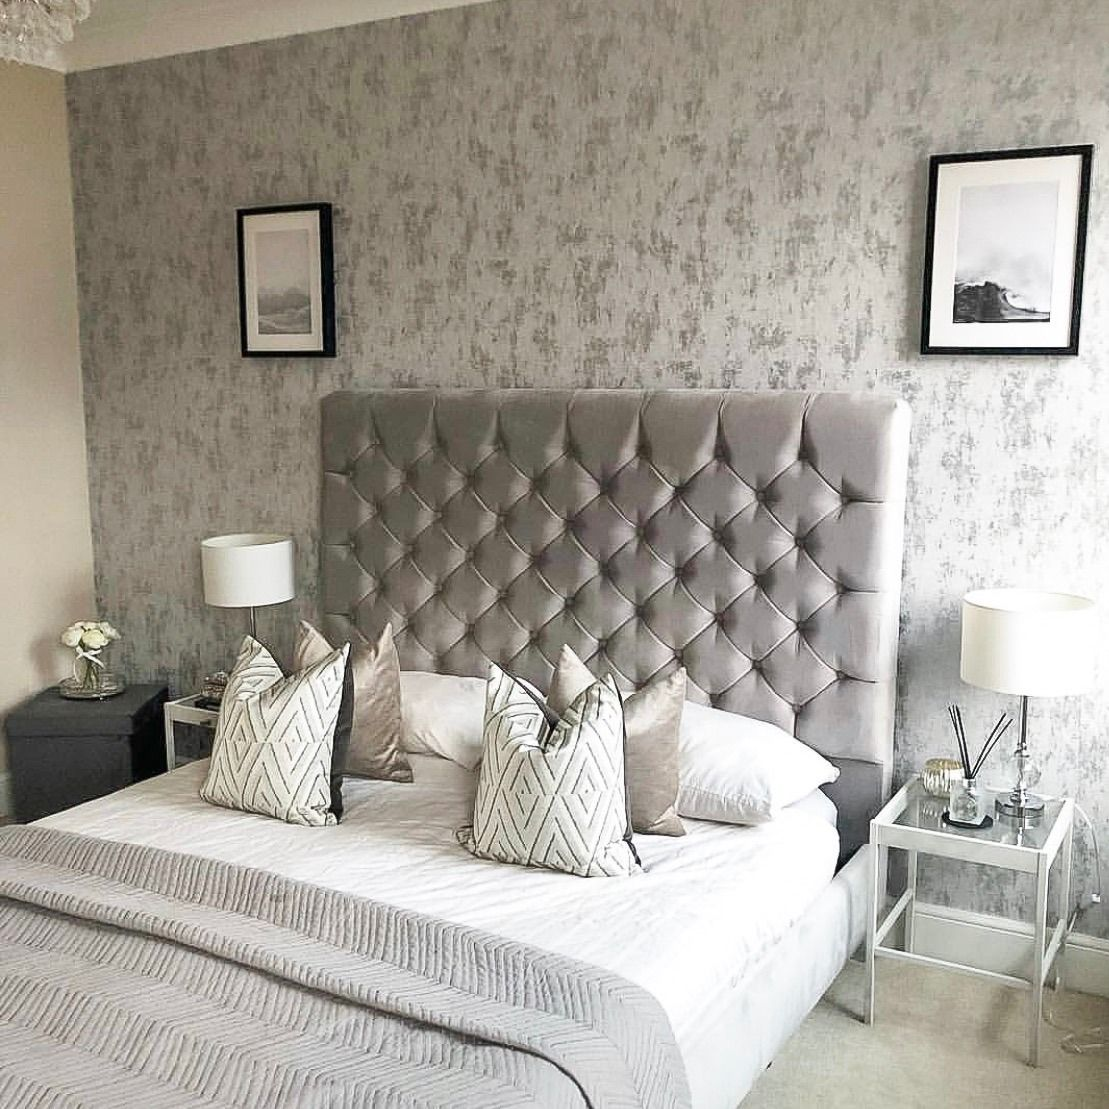 Beautiful Homeinterior Design: This Wallpaper Is A Beautiful , Contemporary Design That